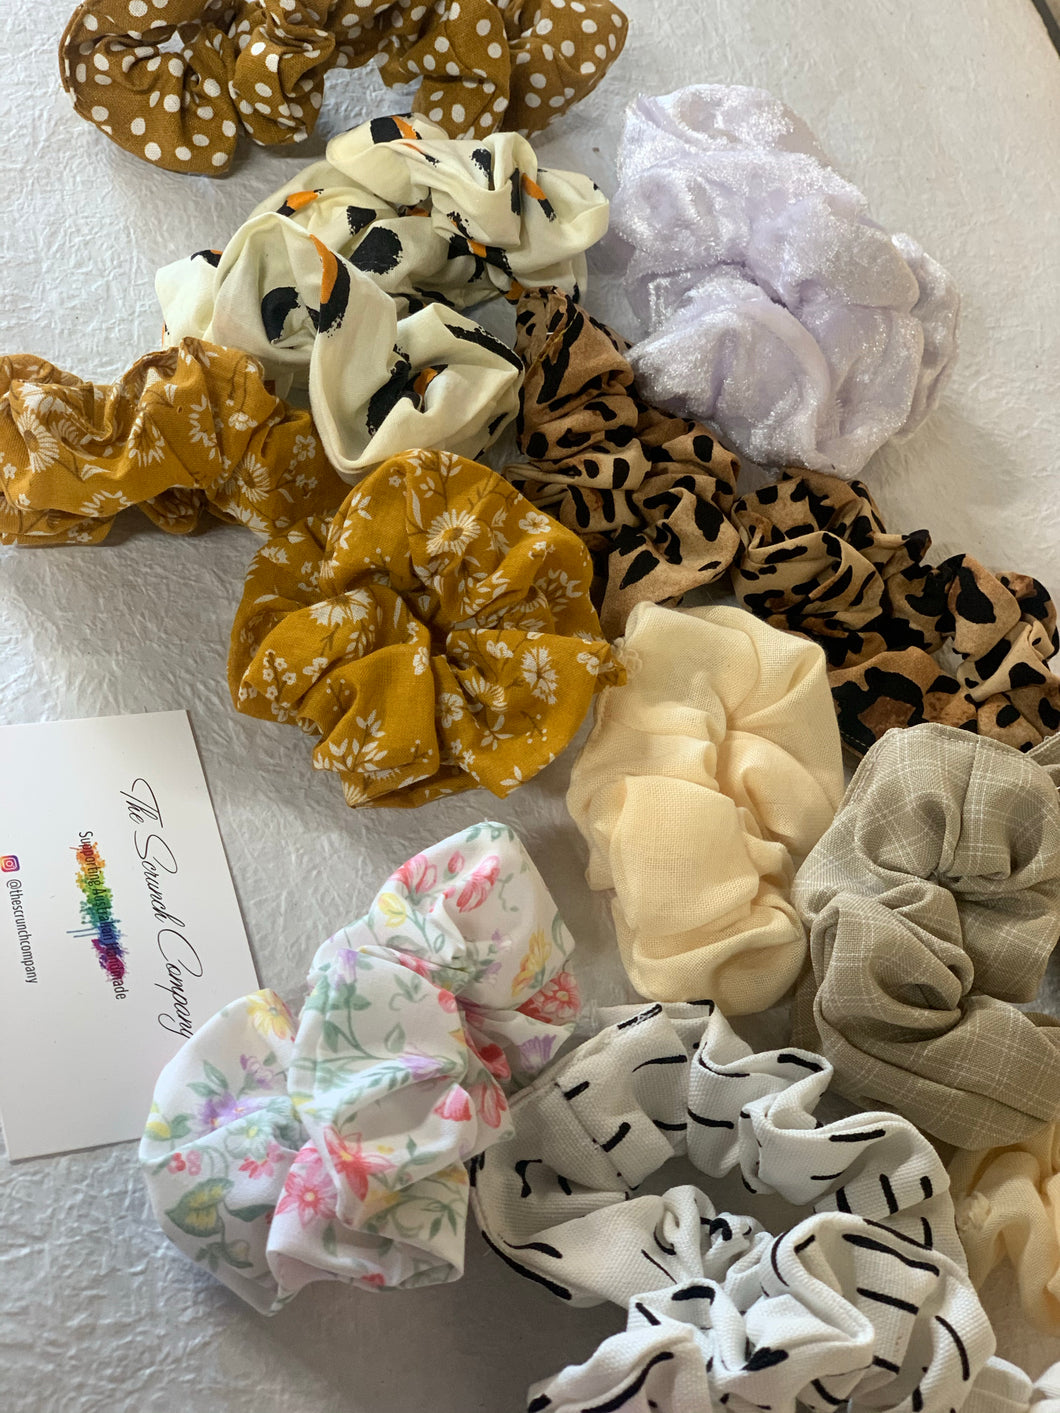 Local Handmade Scrunchie - The Scrunch company